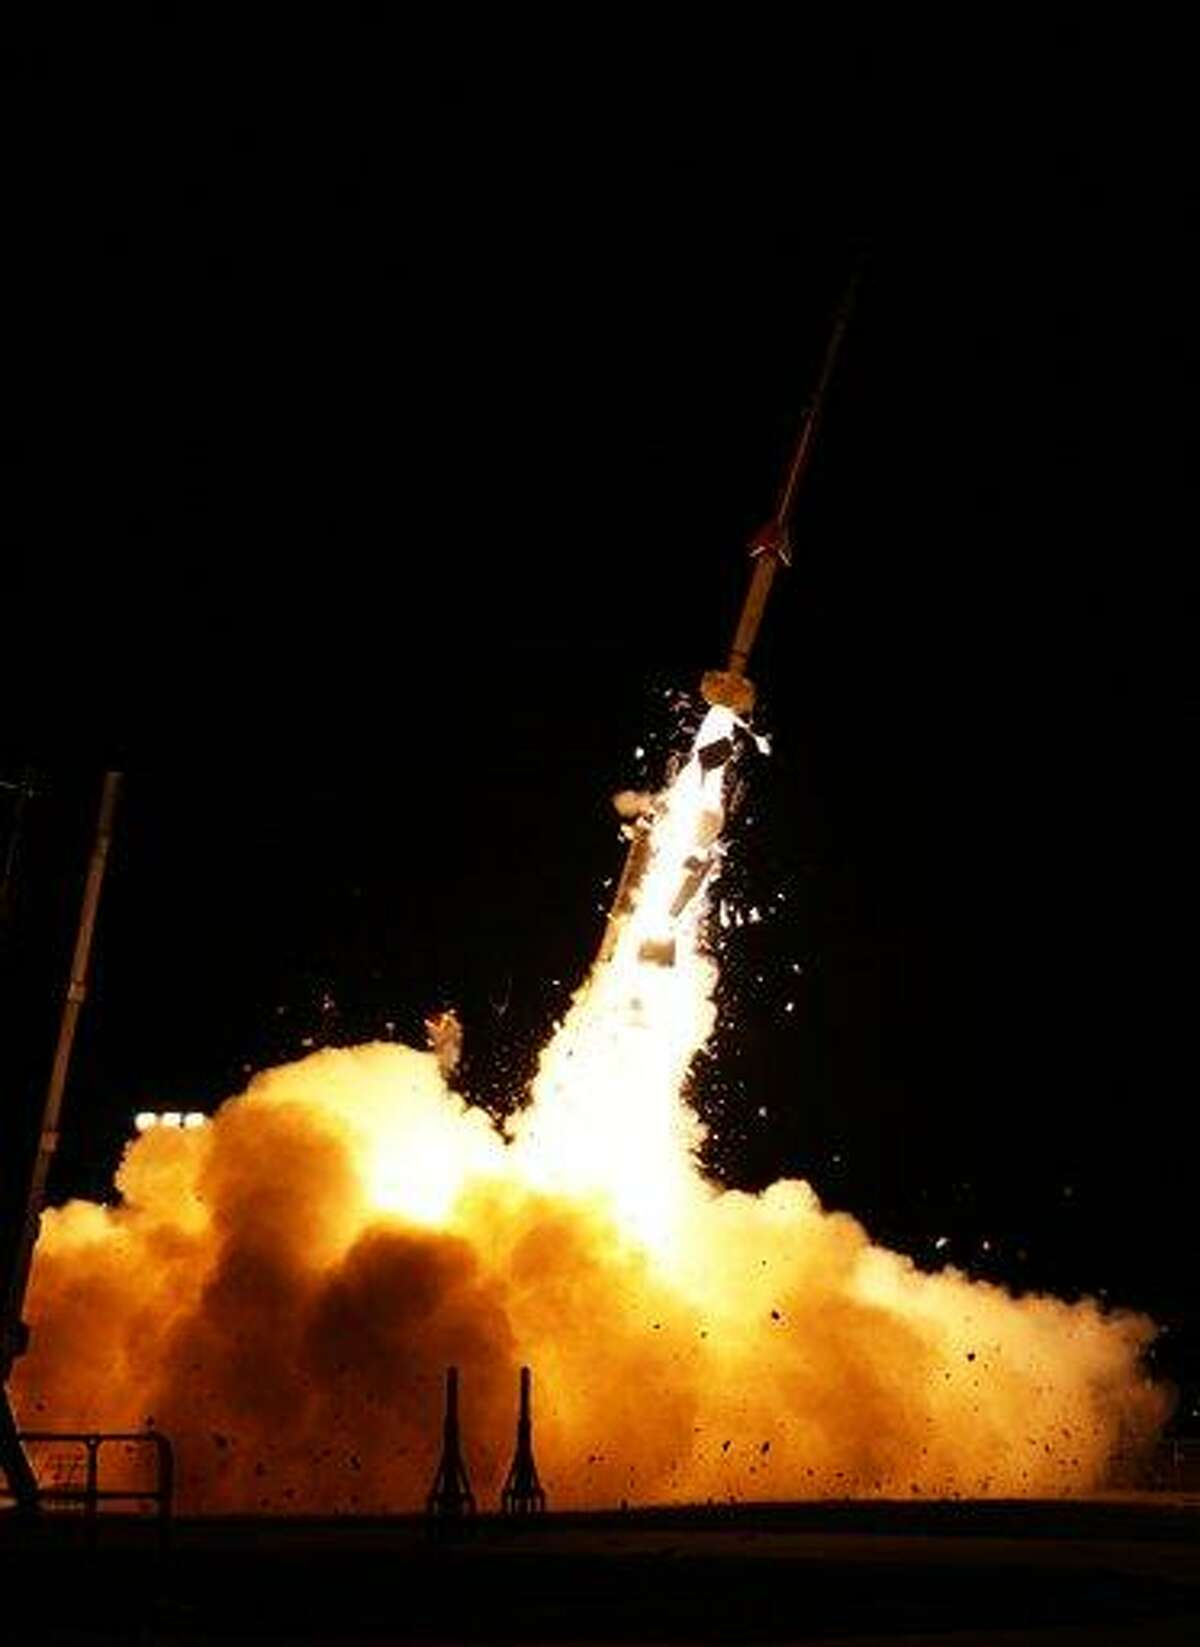 In this photo provided by NASA, a sounding rocket launches from NASA's Wallops Flight Facility in Wallops Island, Va., Tuesday as part of the Anomalous Transport Rocket Experiment (ATREX). Five rockets were launched from the site before dawn Tuesday for the ATREX mission to help scientists understand the upper level jet stream, which is located 60 to 65 miles above Earth's surface. Associated Press